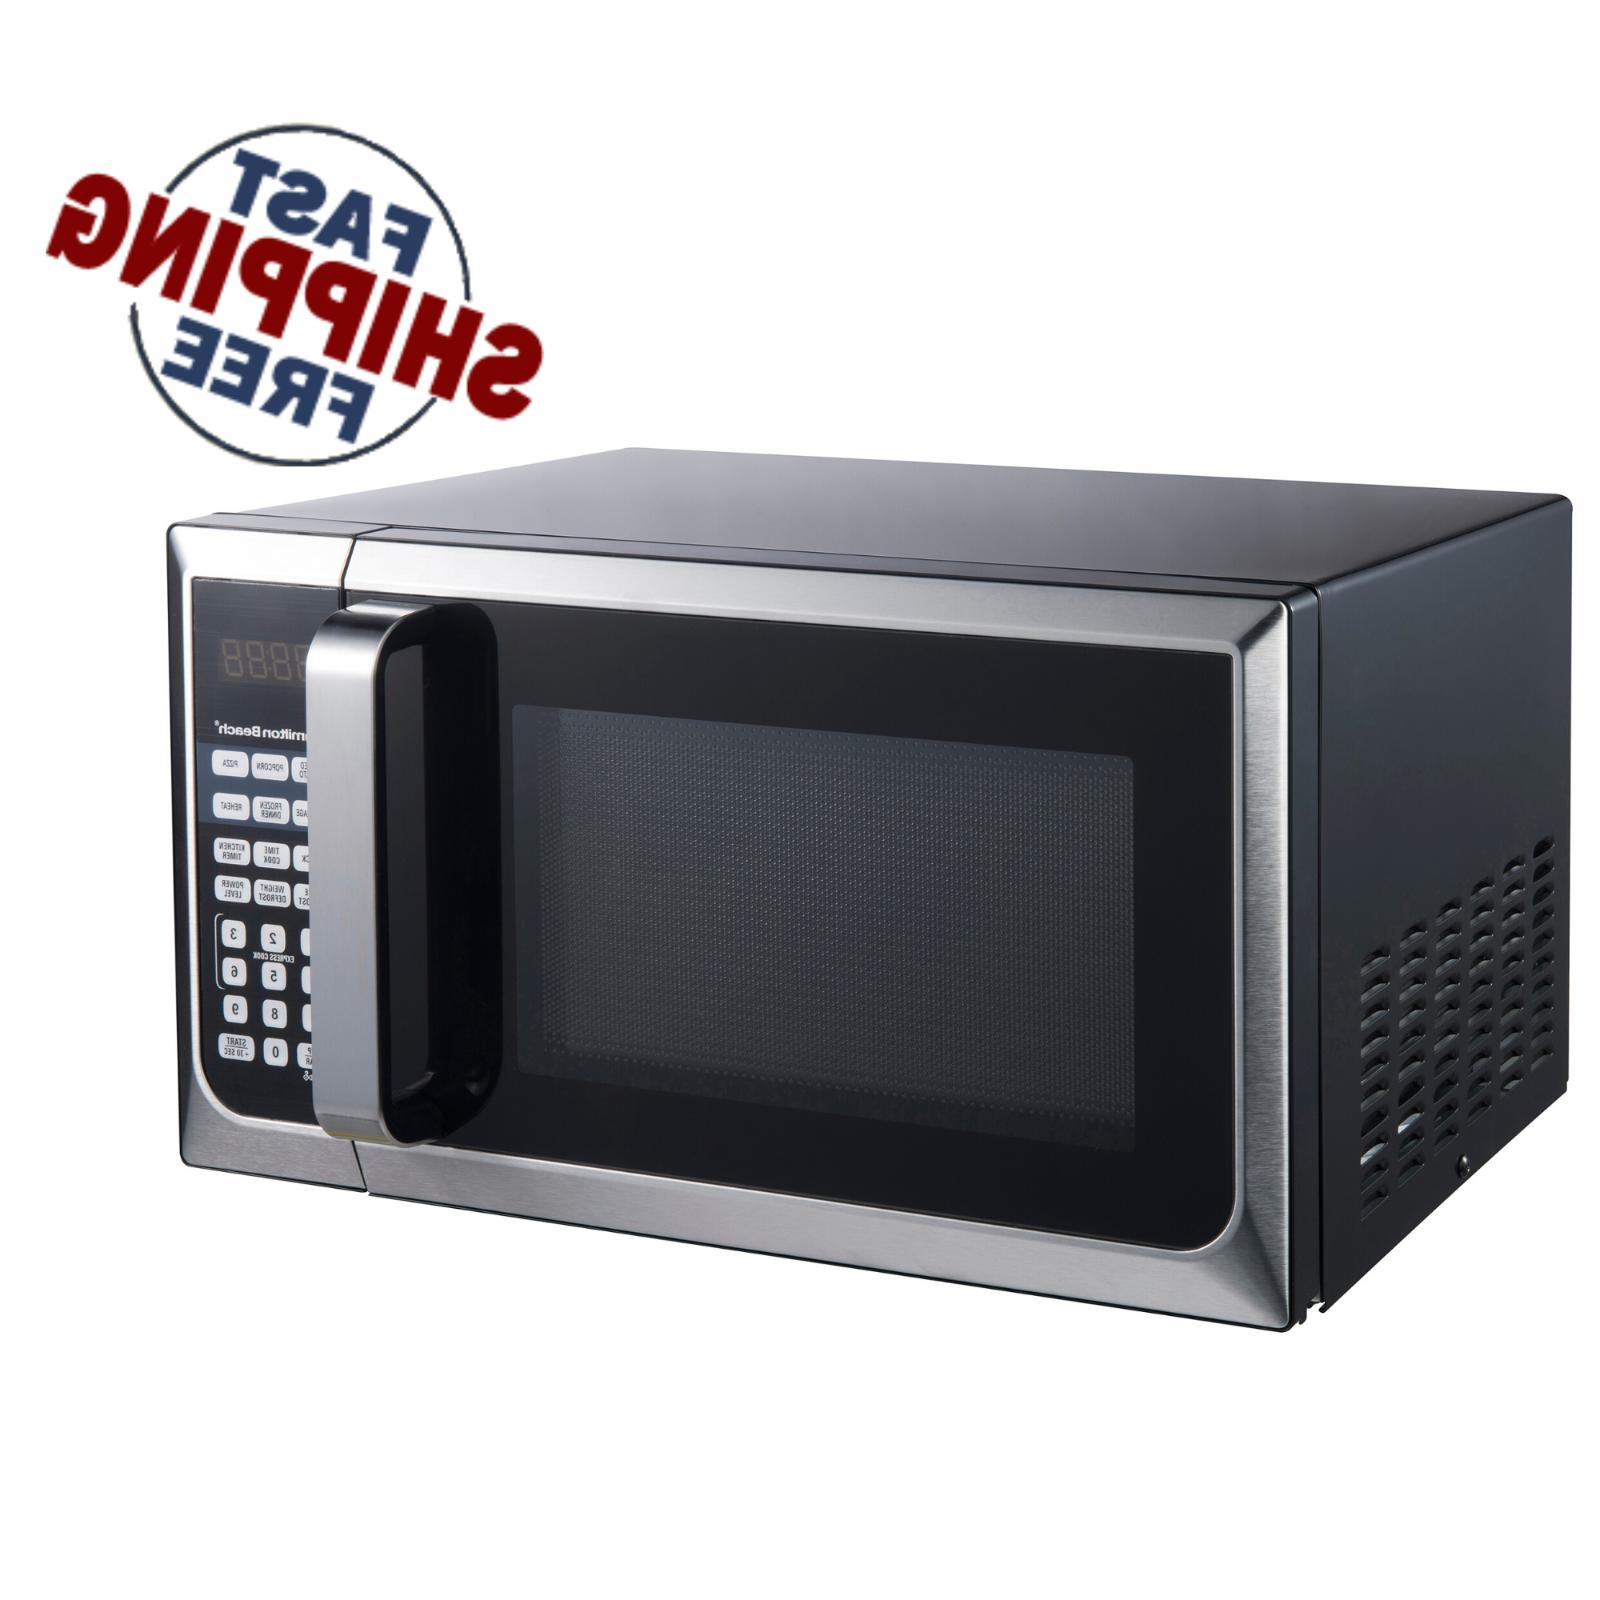 countertop microwave stainless steel home office led